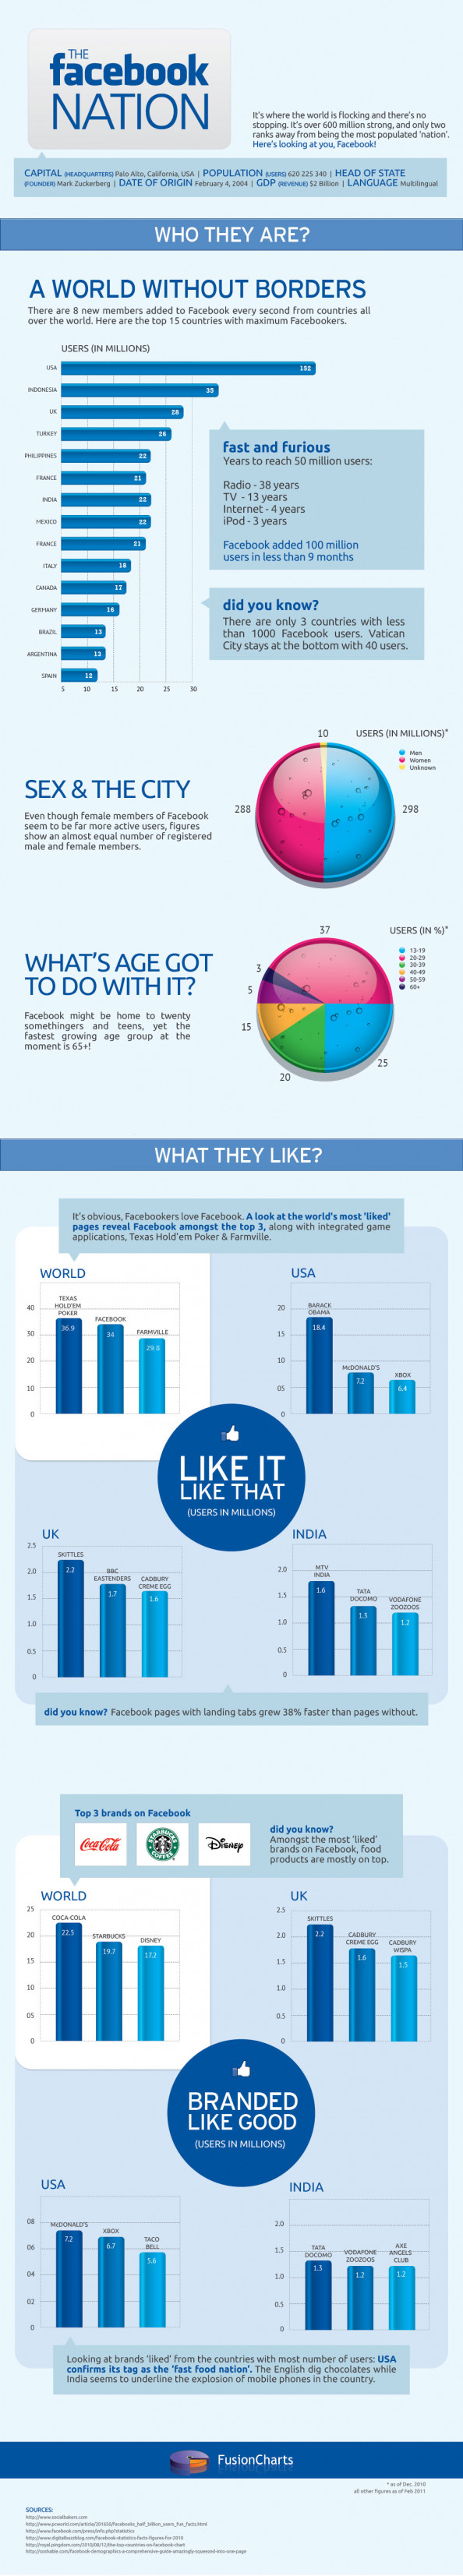 The Facebook Nation Infographic